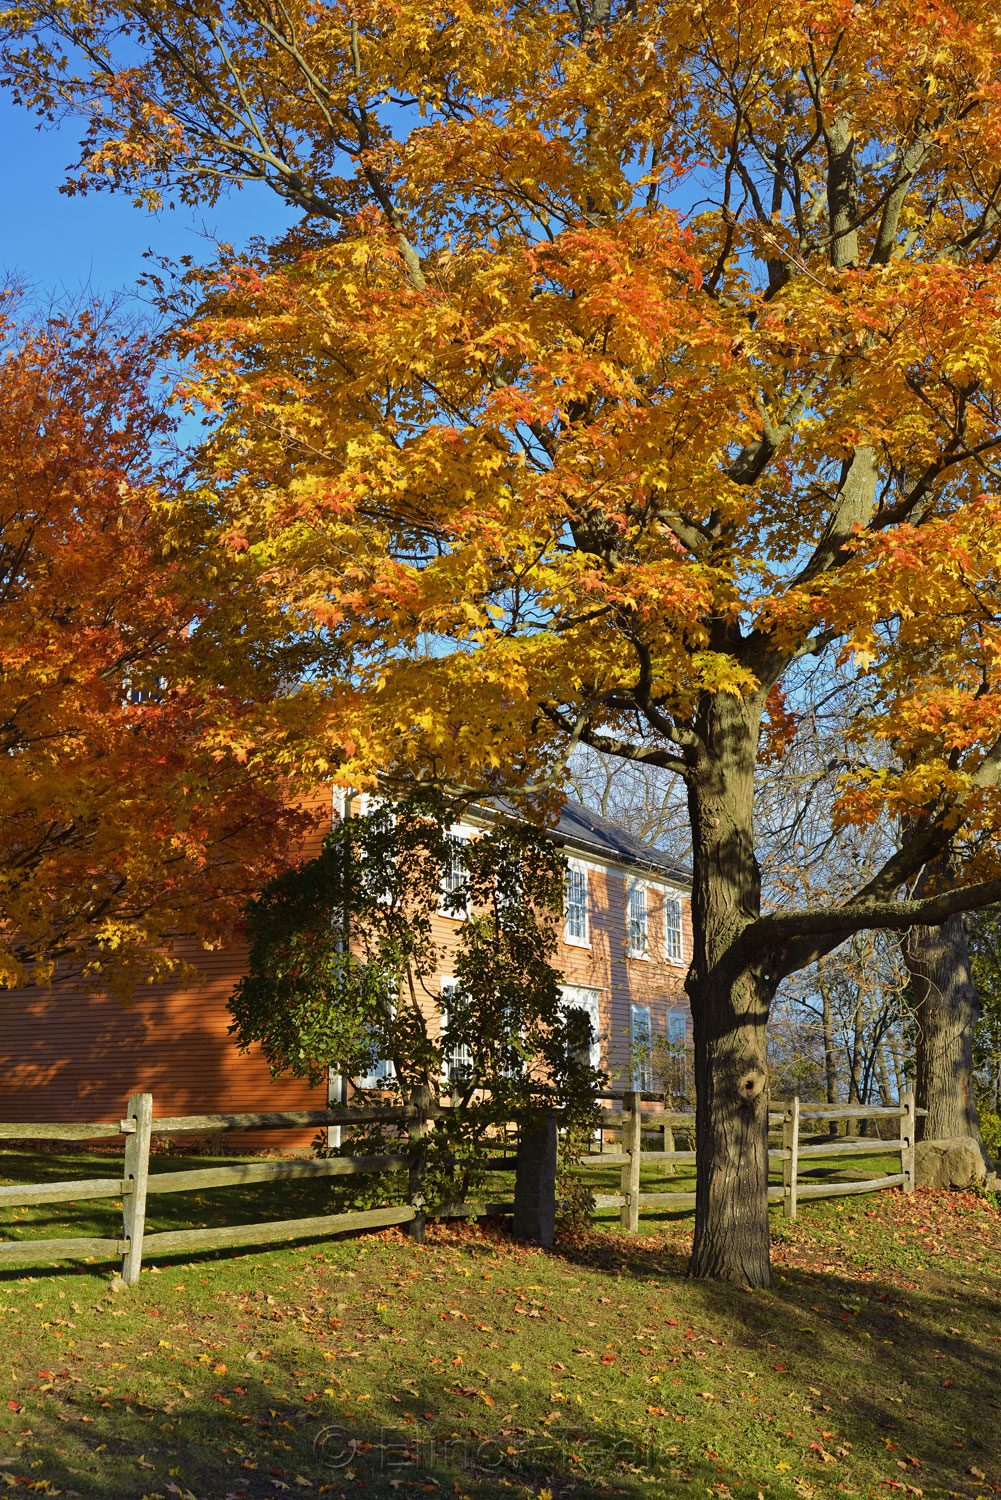 Cogswell's Grant - Fall Foliage, Essex MA 2